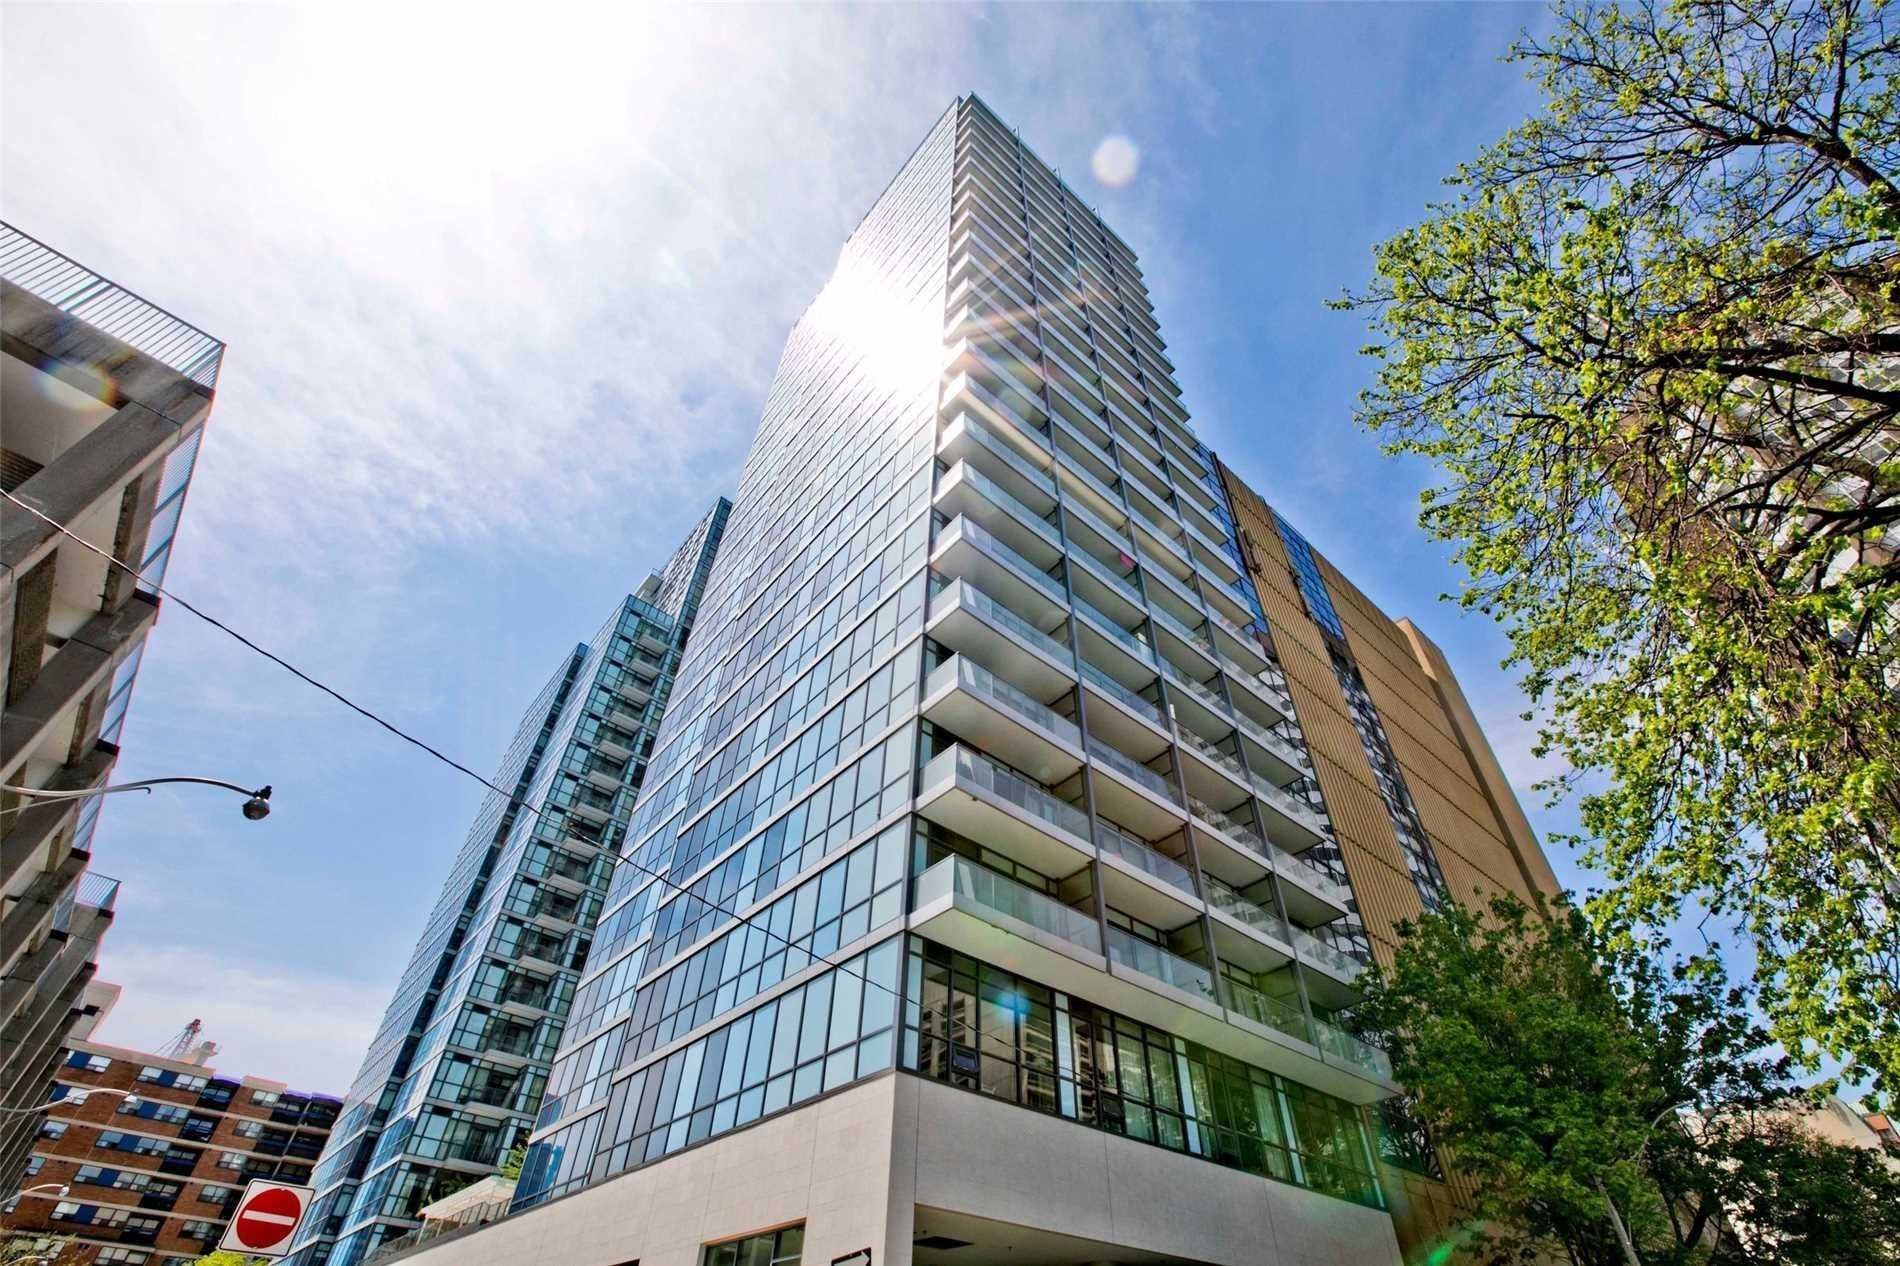 210 Simcoe St, unit 2306 for rent in Toronto - image #1